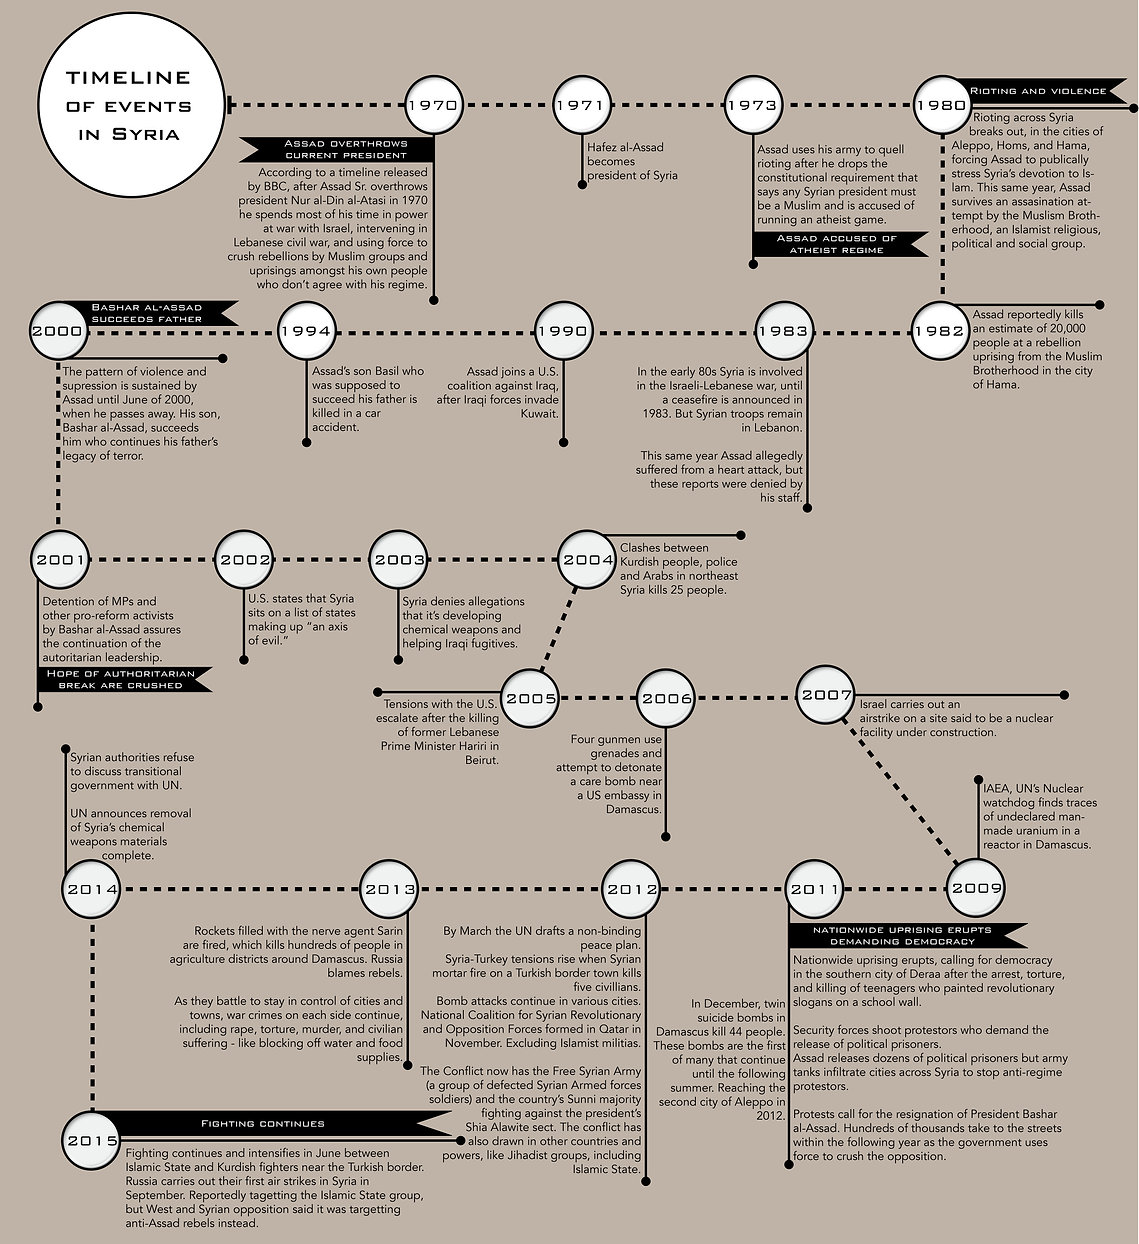 Based on BBC timeline. Syria's line of events since 1970